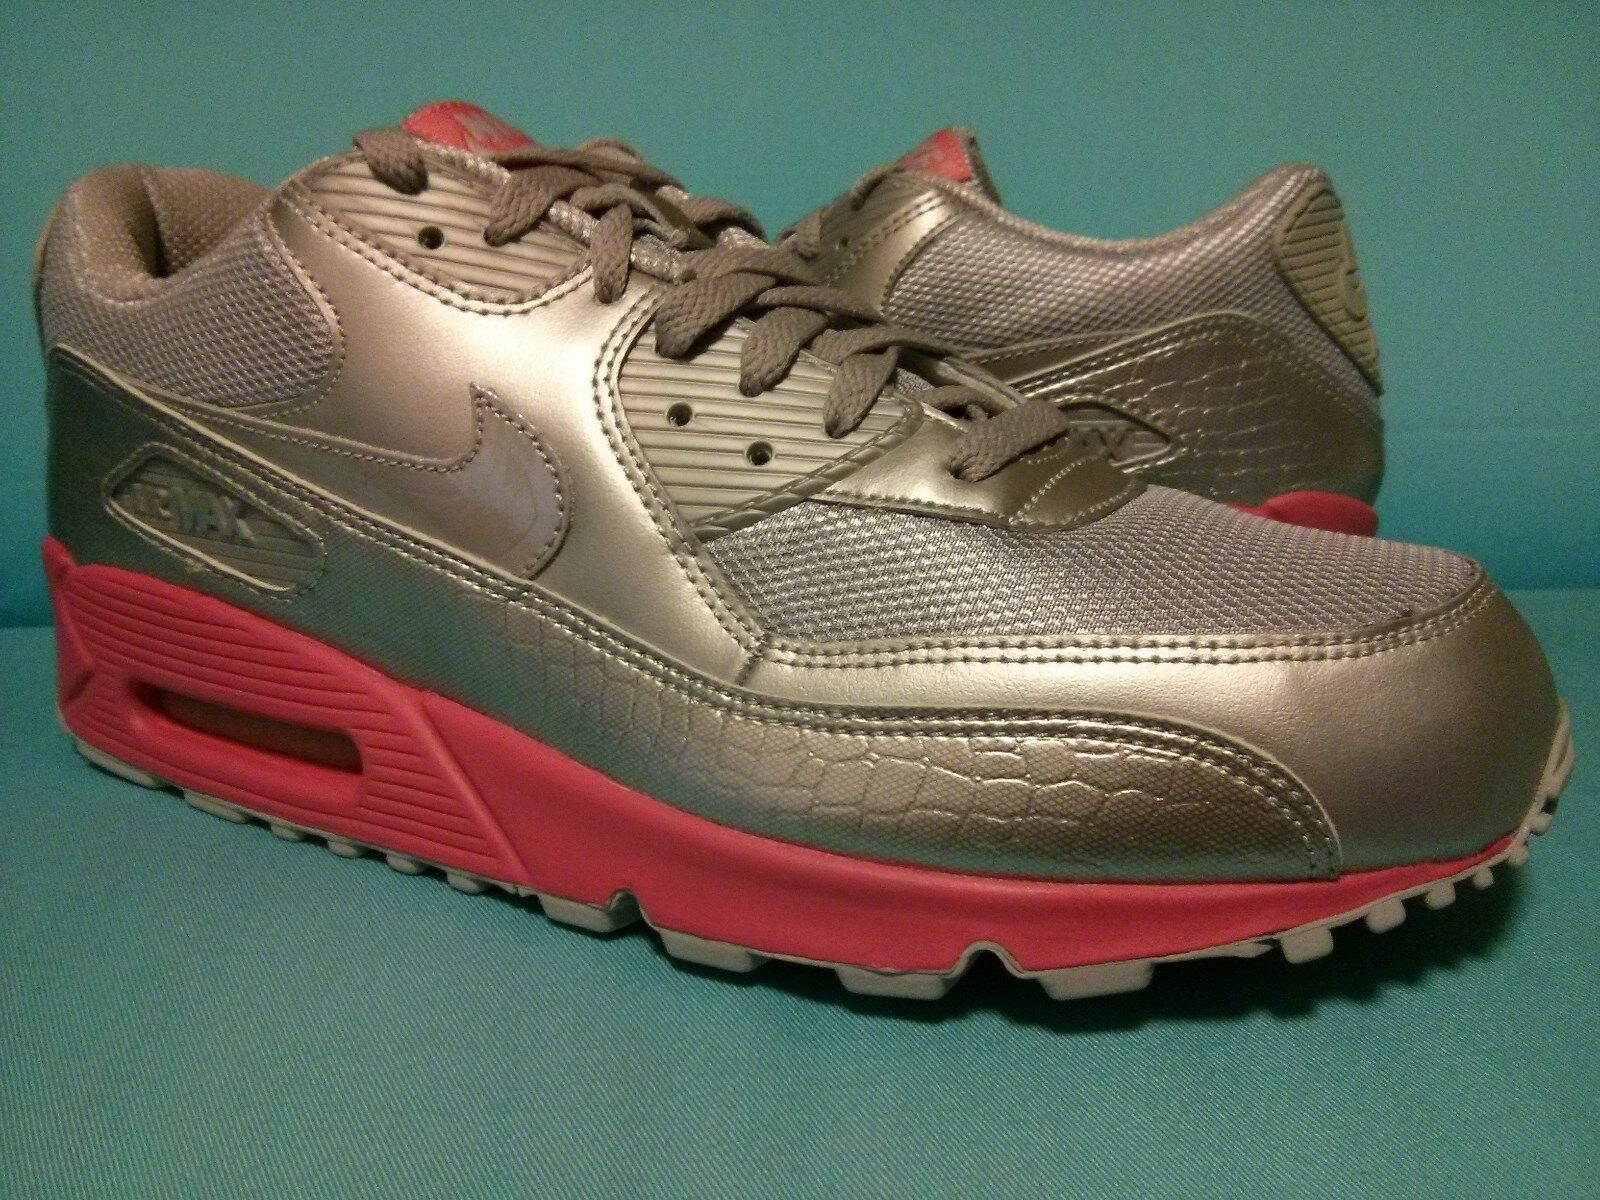 DS 2007 NIKE MAX 90 Premium 308856-002 HEAT AIR Pack NSW AM90 SZ12